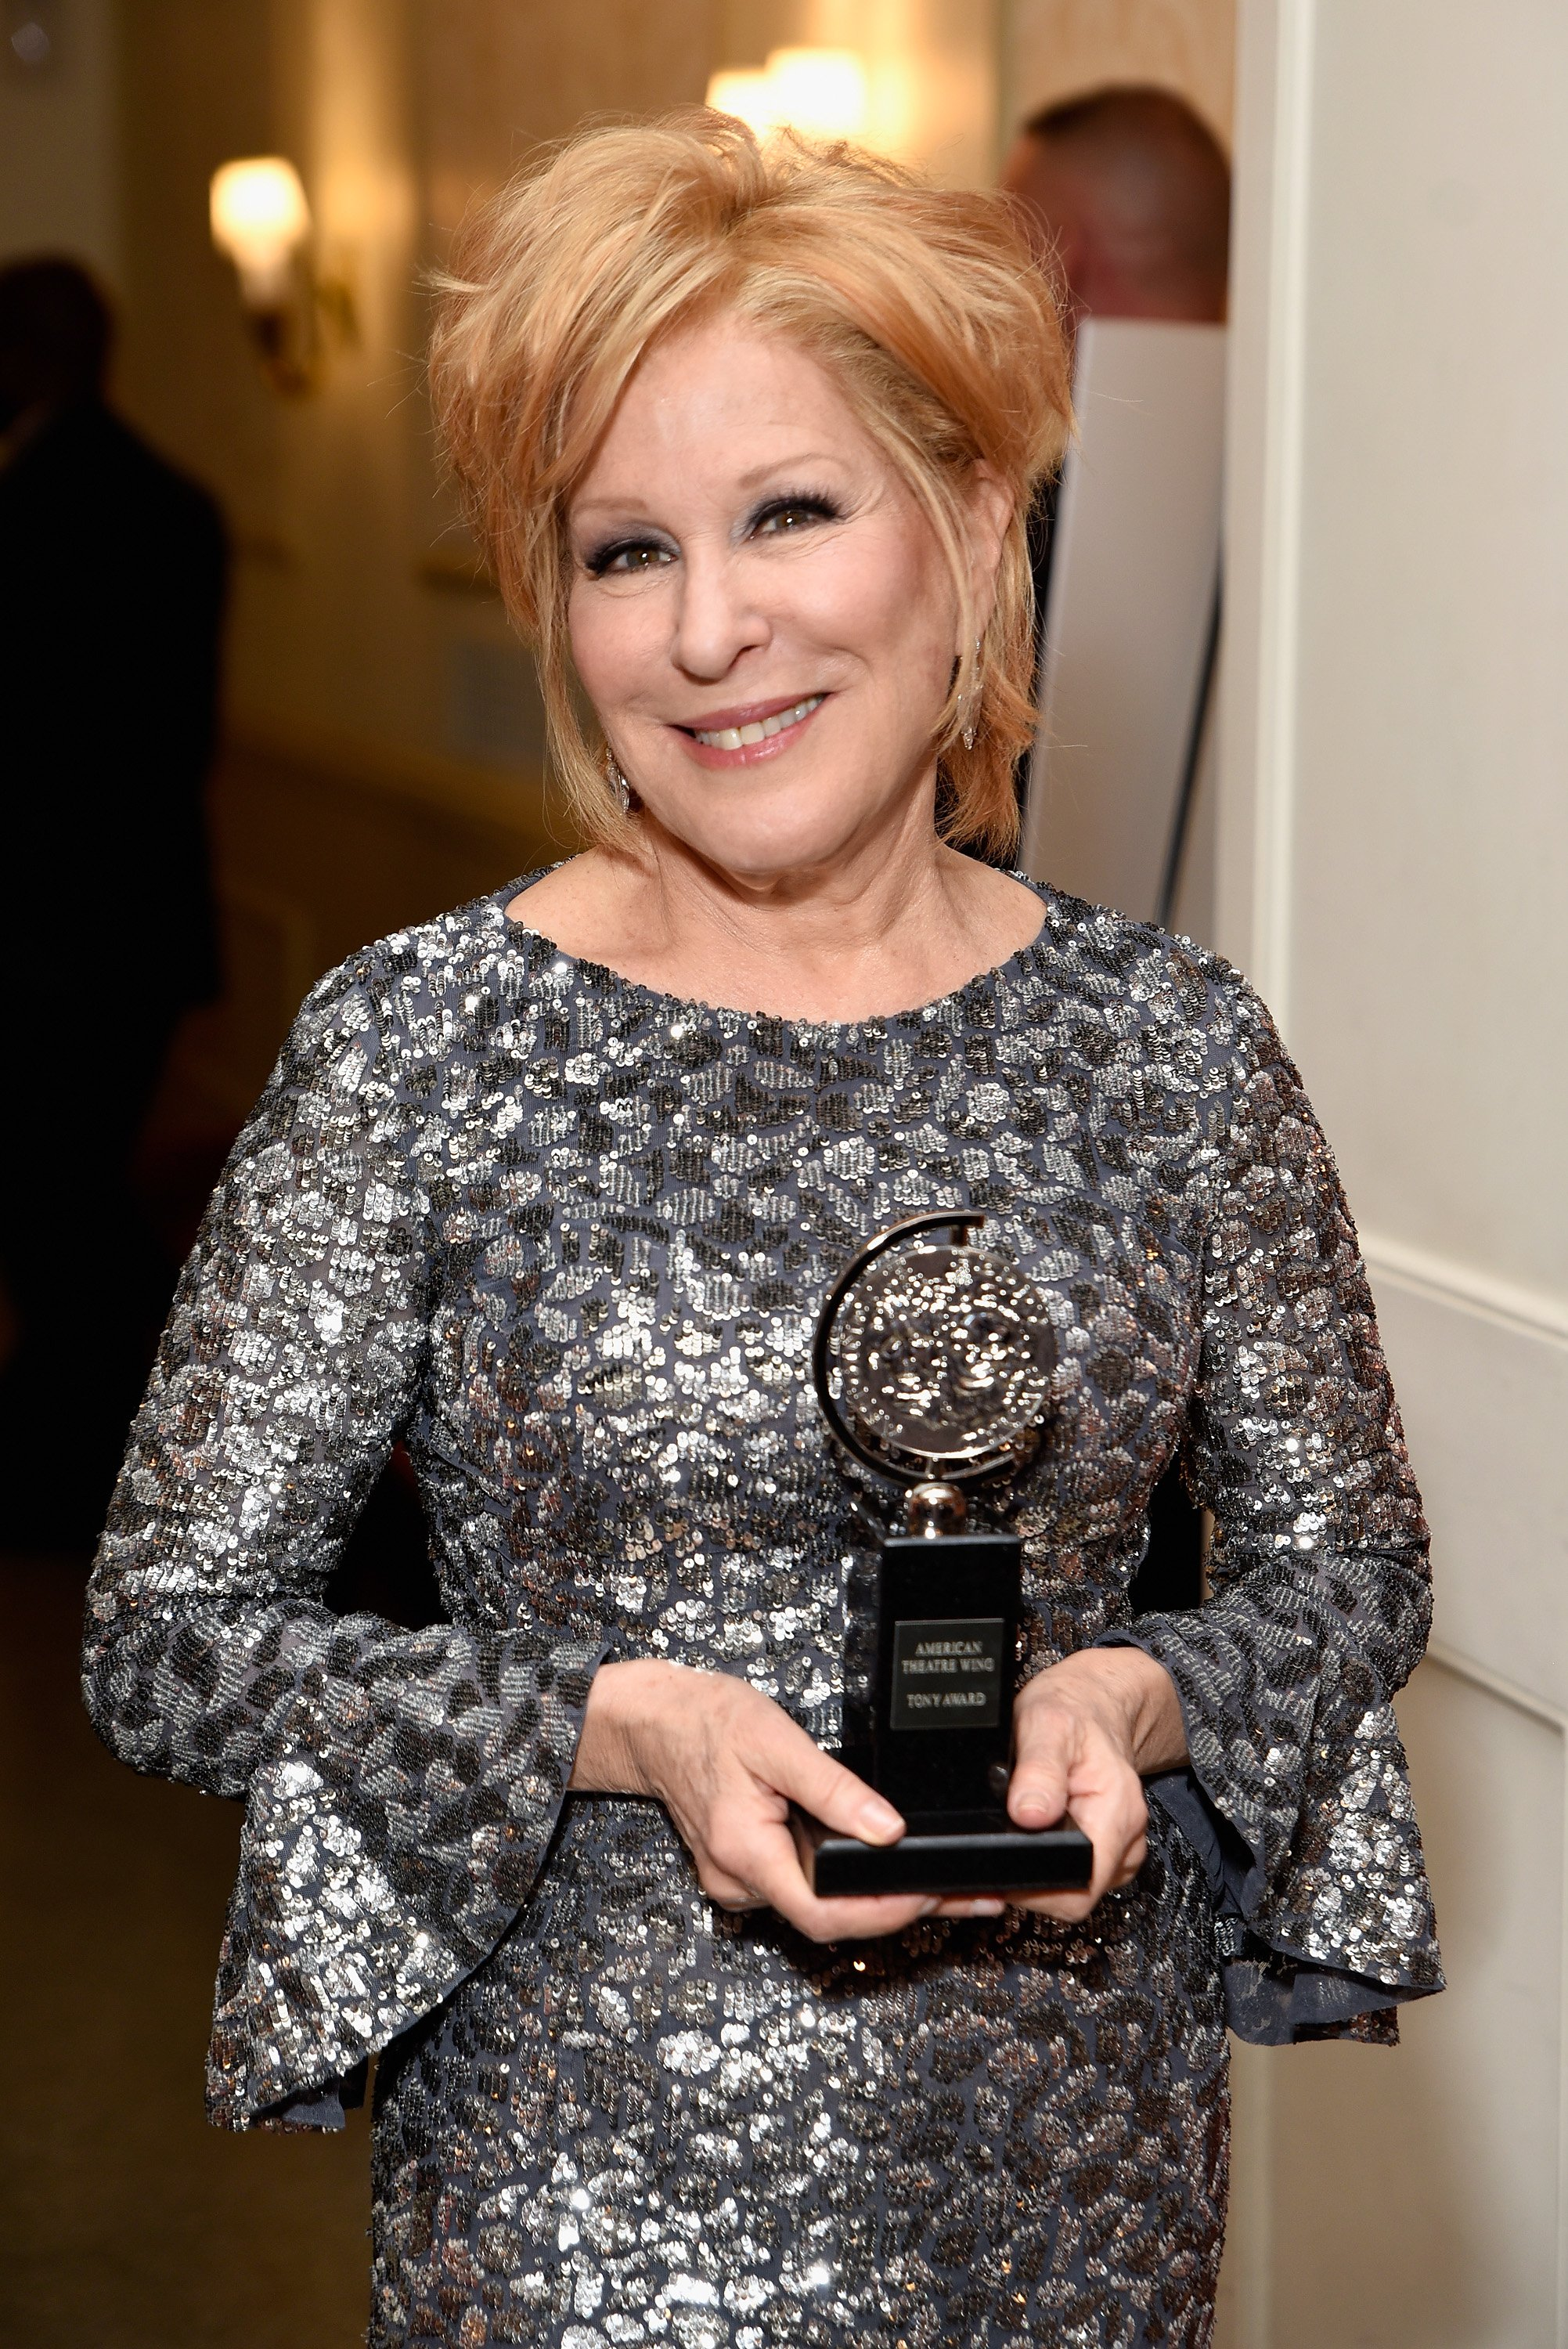 Bette Midler attends the 2017 Tony Awards on June 11, 2017. | Photo: Getty Images